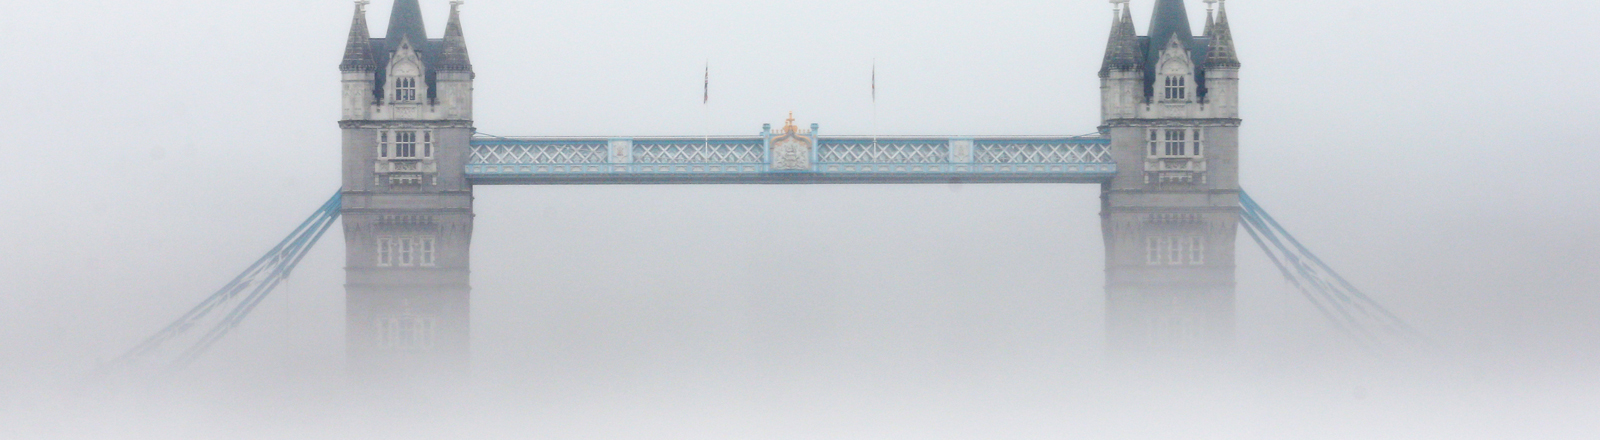 Die Tower Bridge im Nebel